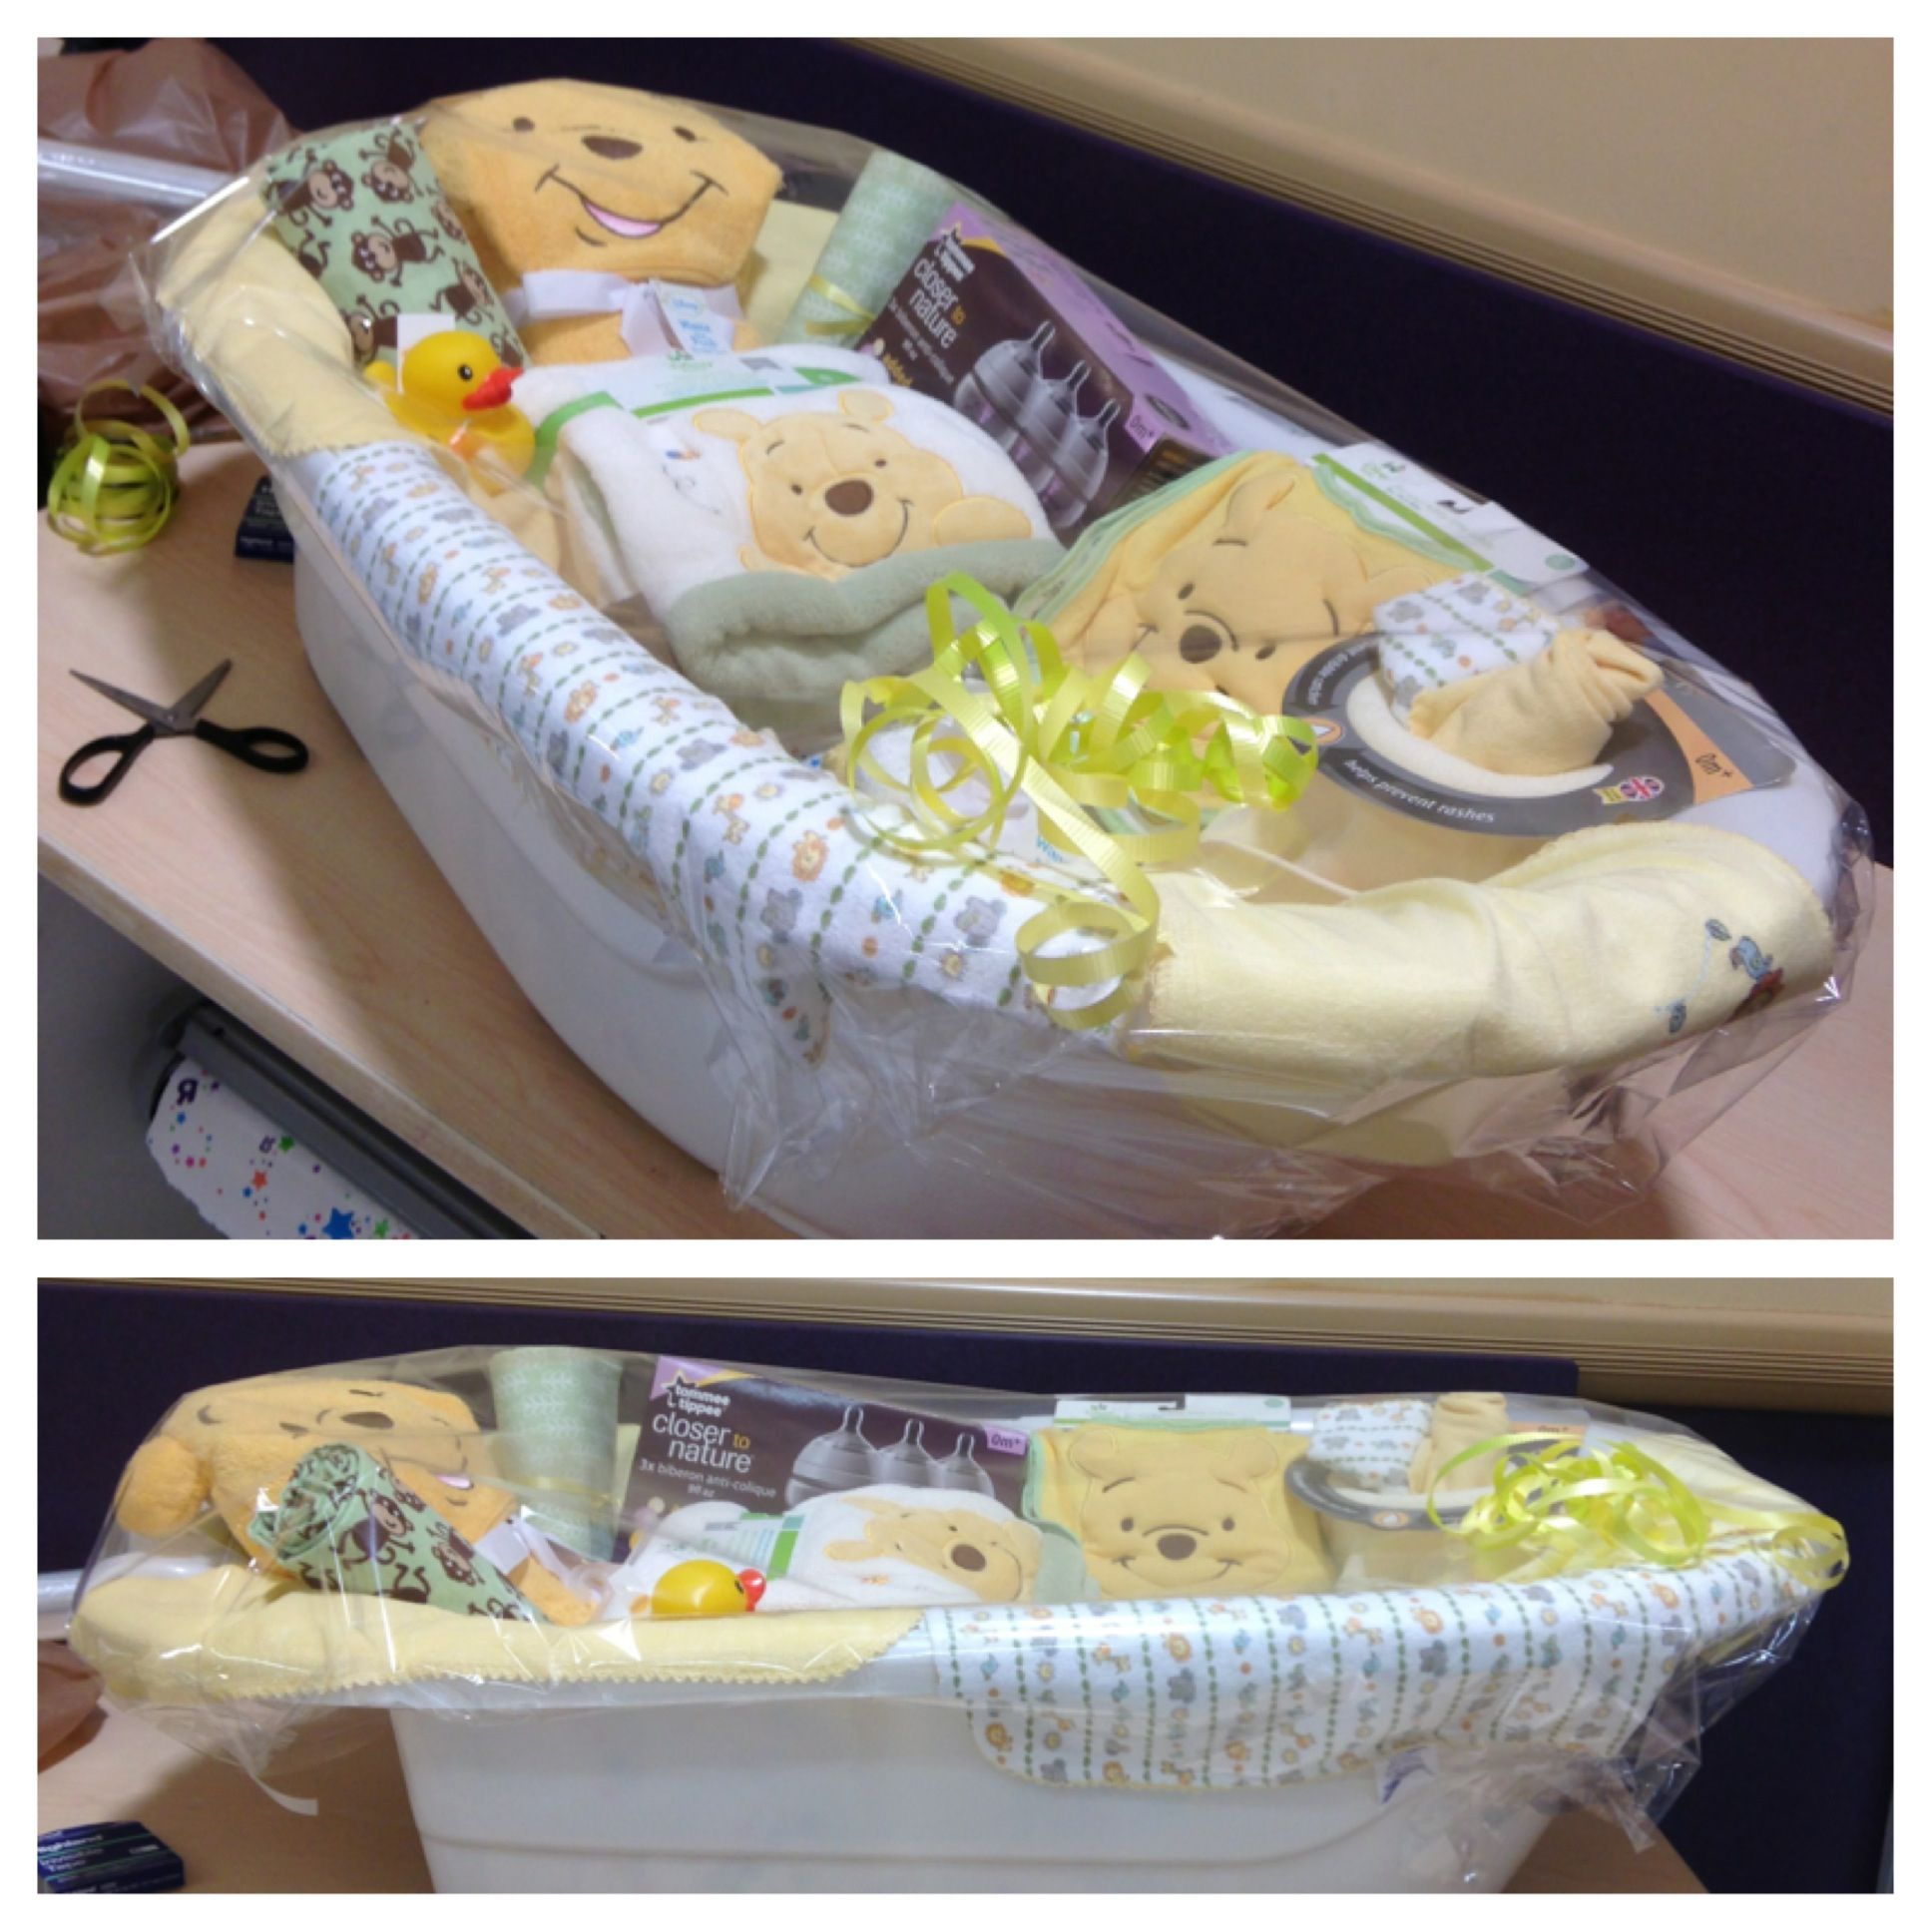 Baby shower t basket used bath tub as a base filled with